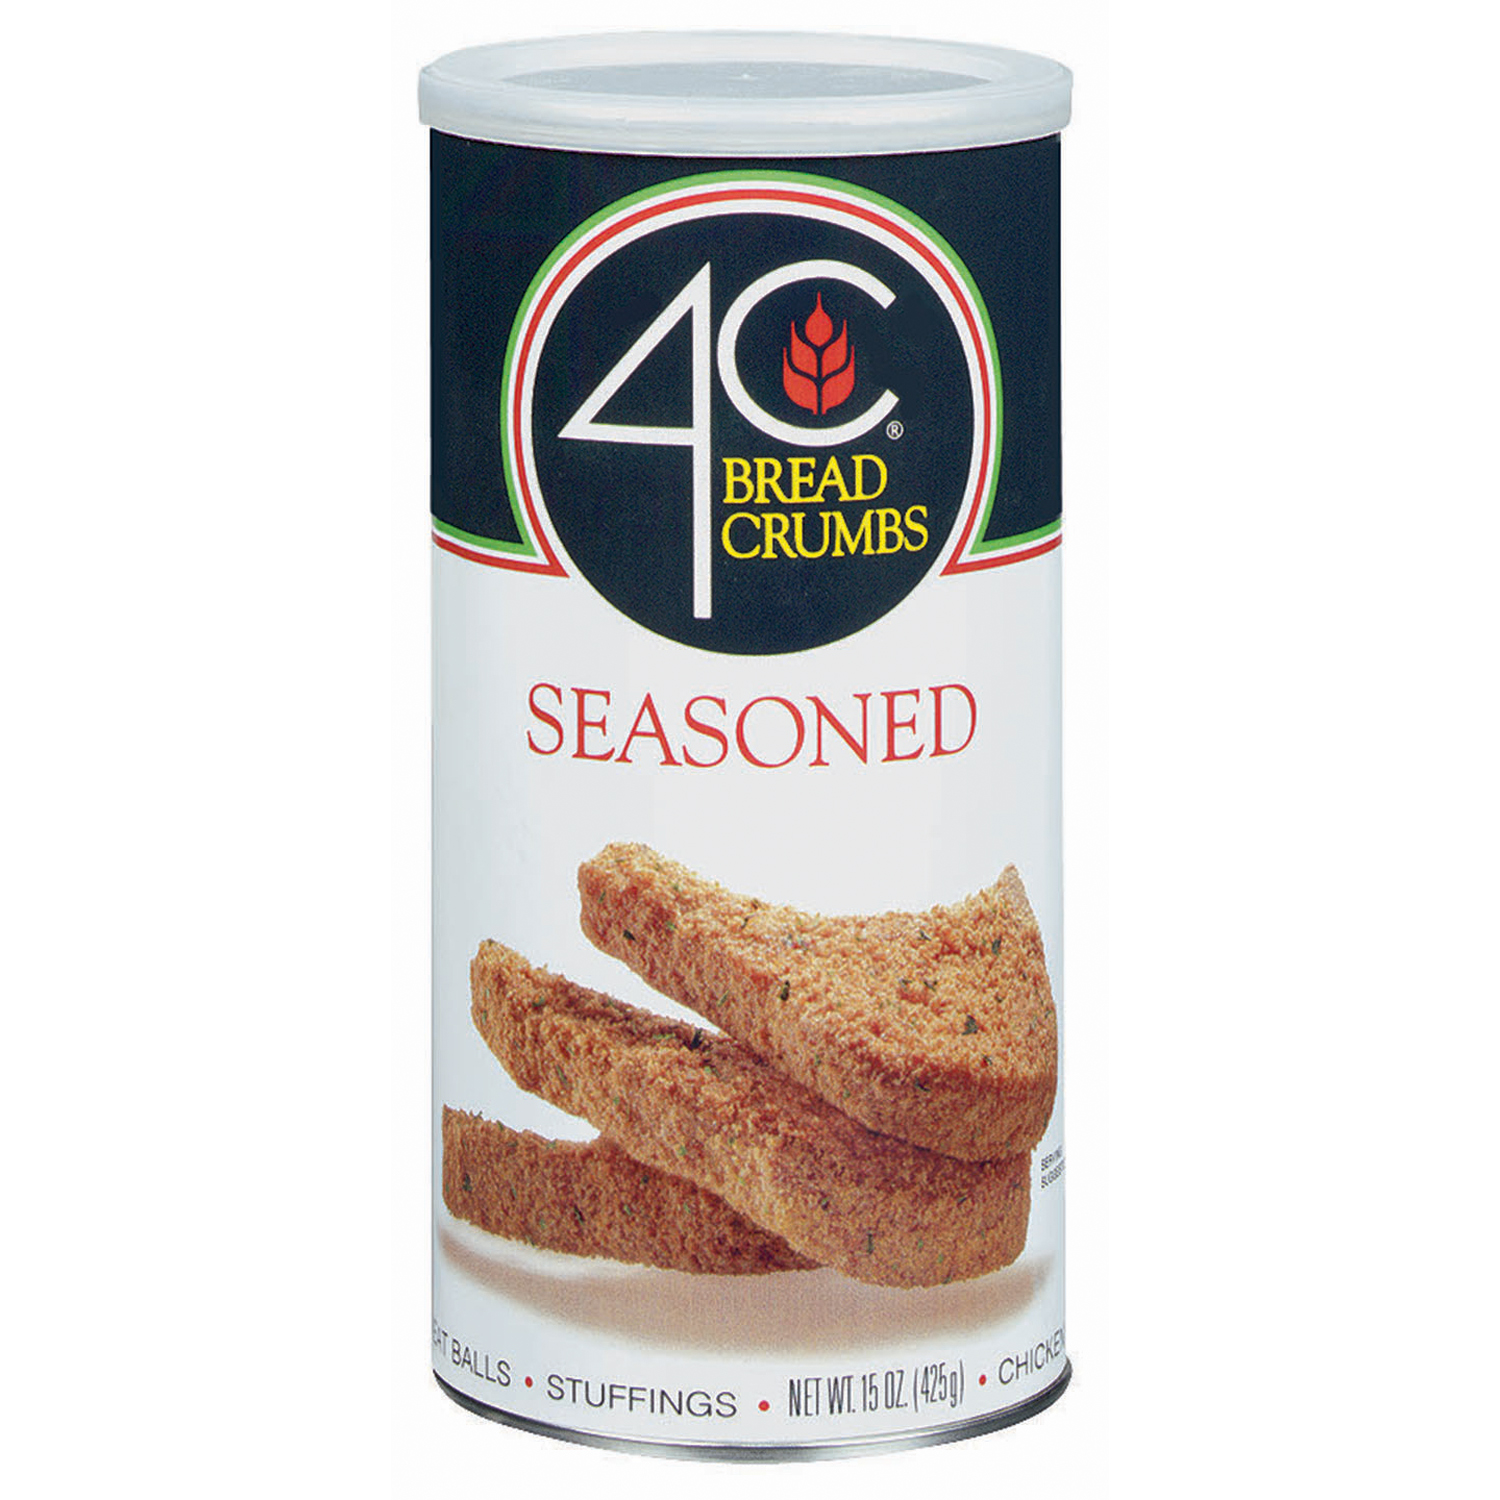 4C Seasoned Bread Crumbs, 15 oz